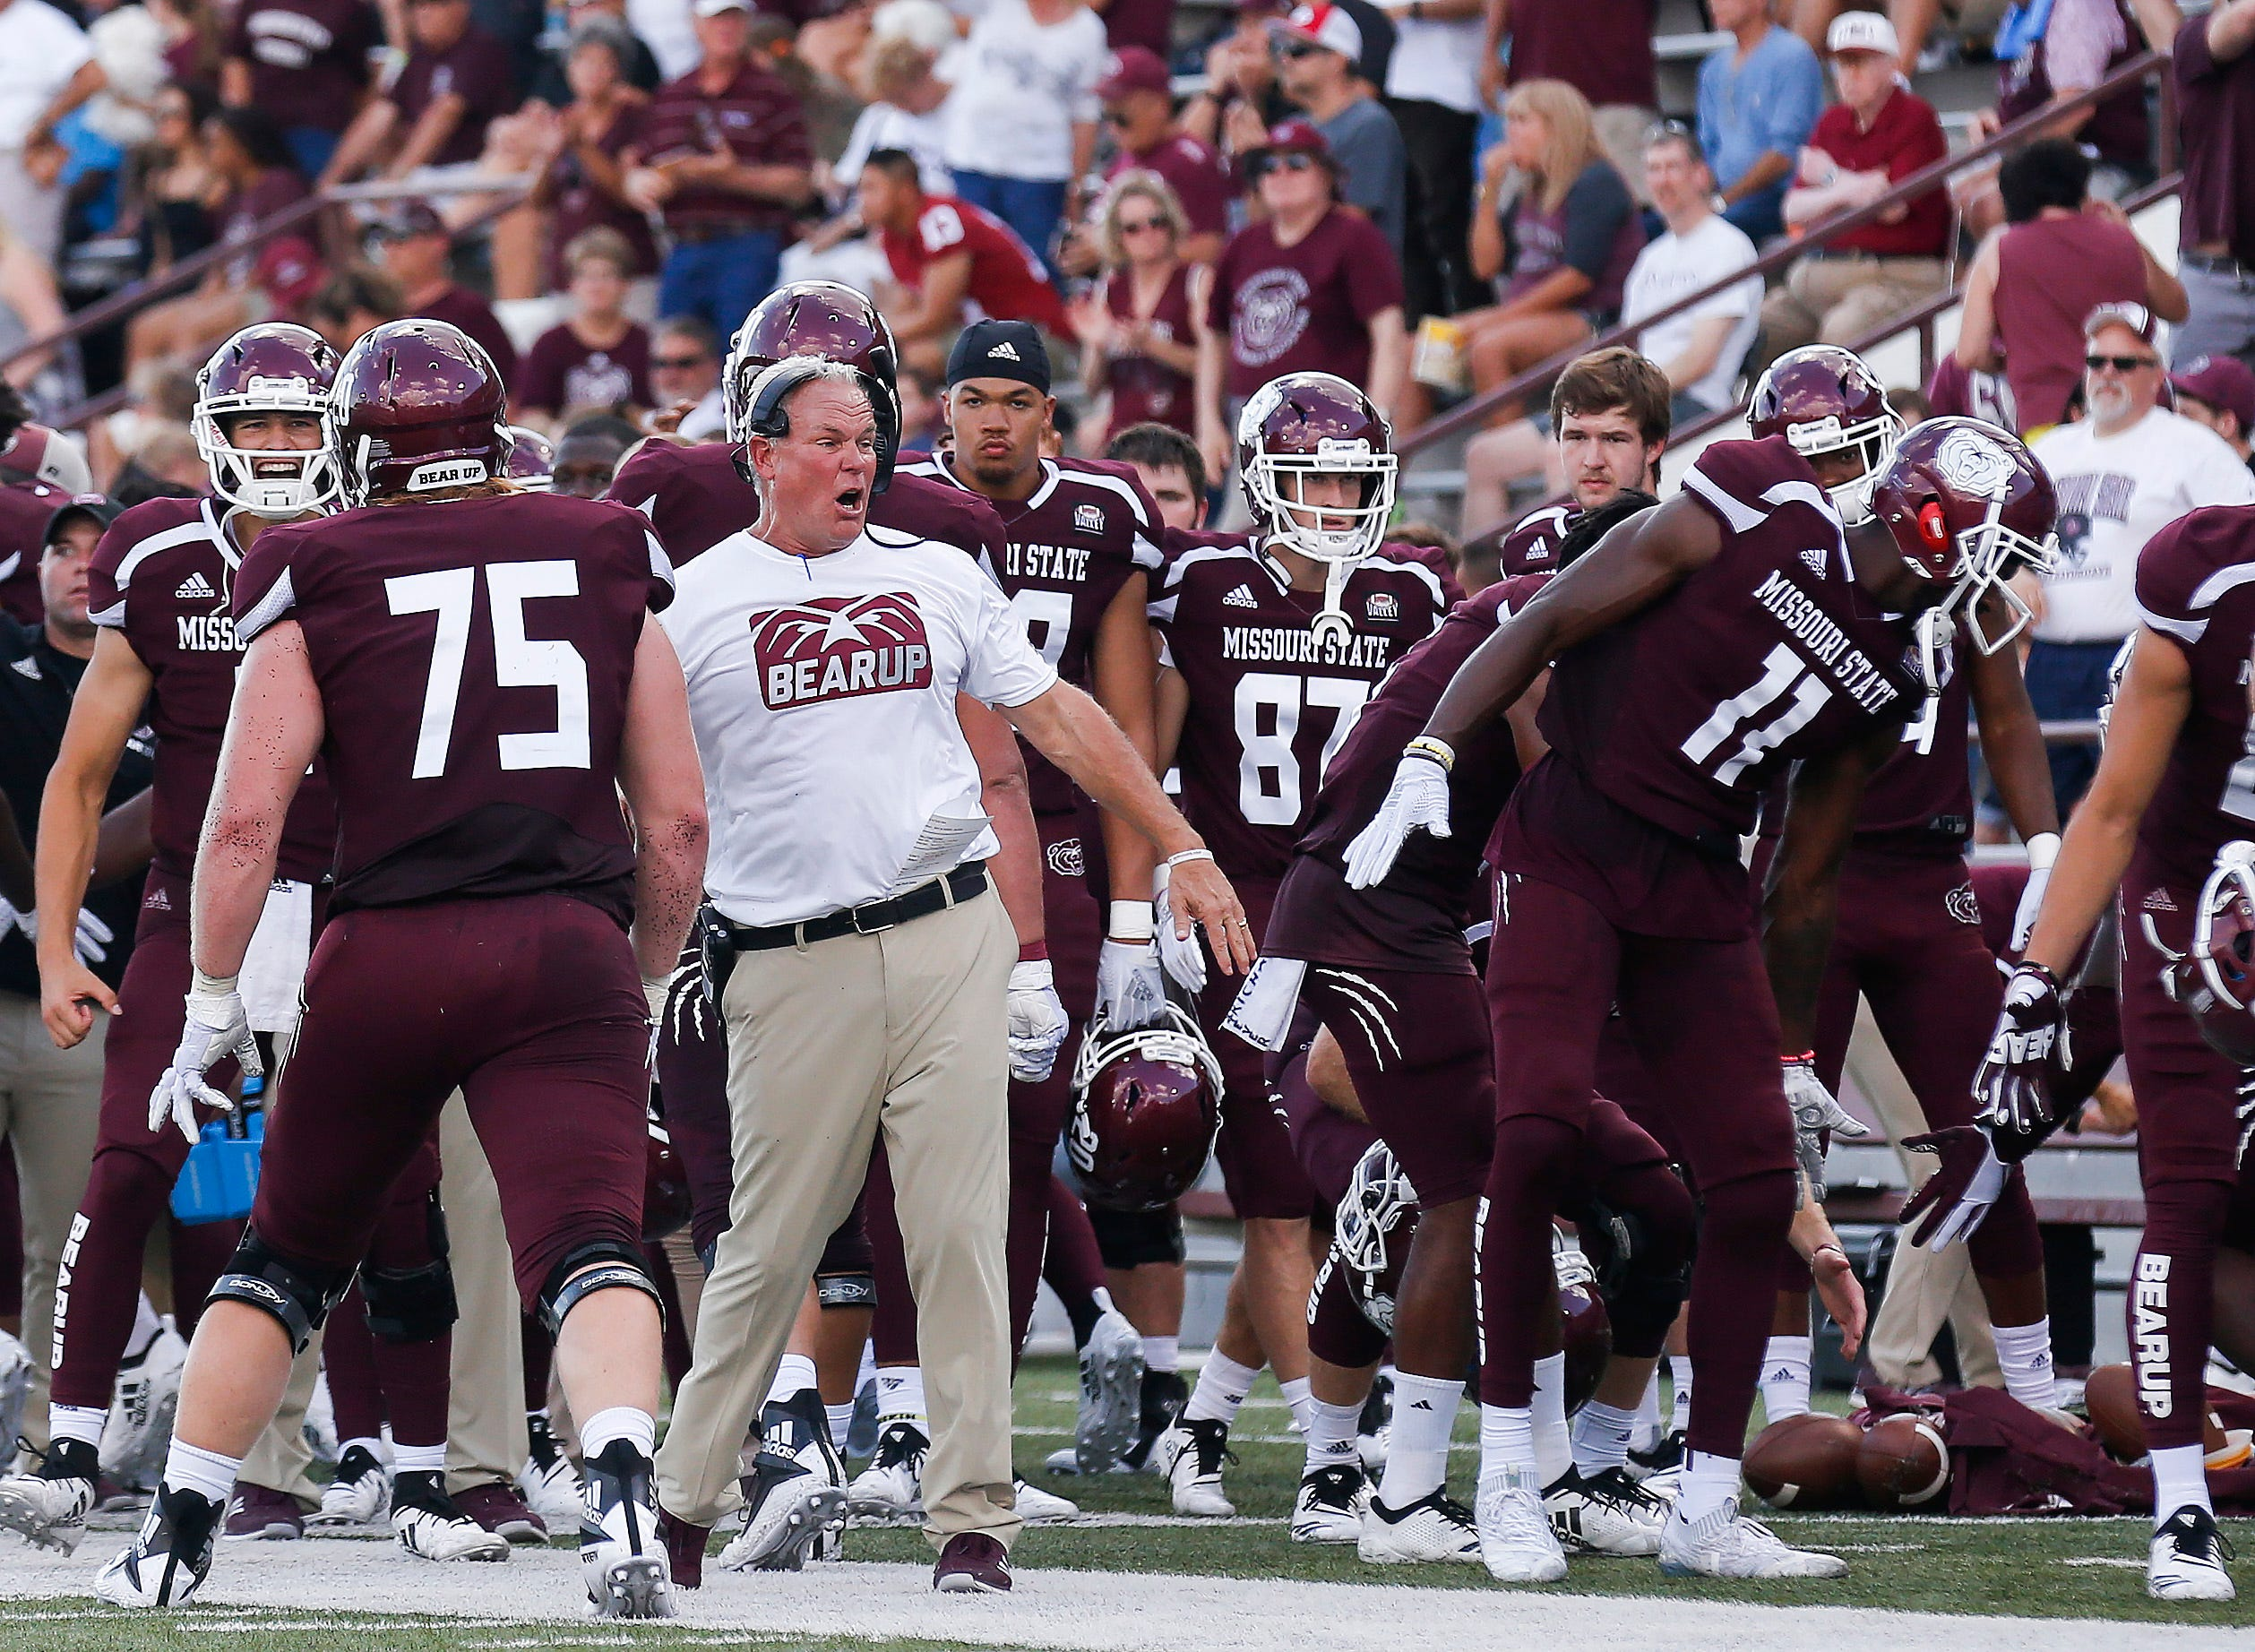 Head coach Dave Steckel celebrates a touchdown during Missouri State's game against Northern Arizona at Plaster Stadium on Saturday, Sept. 15, 2018.